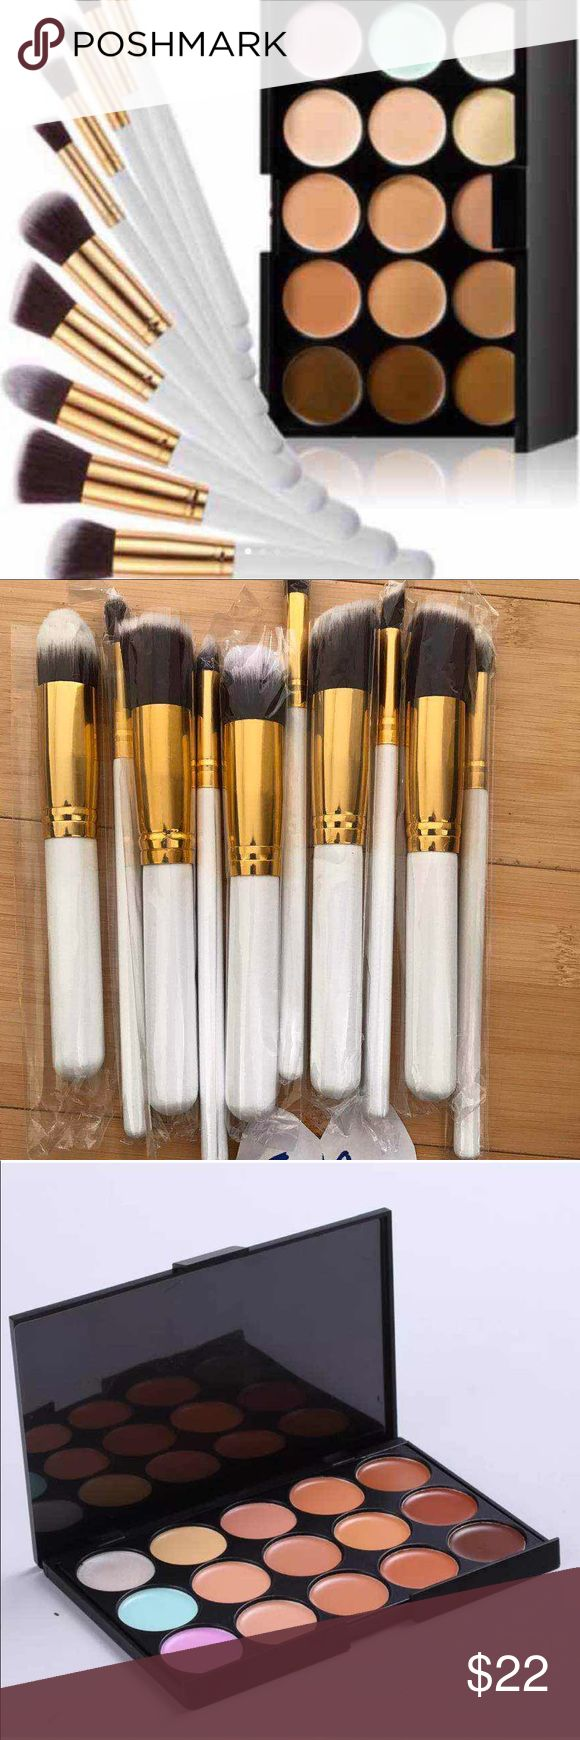 💕❤️🌷New 10pcs makeup brushes +1concealer palette 10PCS Pro Makeup Brushes Set+Concealer 100% brand new  Brush hair's material: Synthetic fibre  Brush handle's material: Wood  Brush length: Large brush: 4.92 inch, Small brush: 5.91 inch 15 Colors Contour Face Cream Makeup Concealer Palette Sponge Puff Powder Brush^~  # New 15 color Camouflage Concealer Palette An ensemble of multiple vibrant long wear concealer colors 15 full color palettes Concealer, include matte and shimmer colors match…